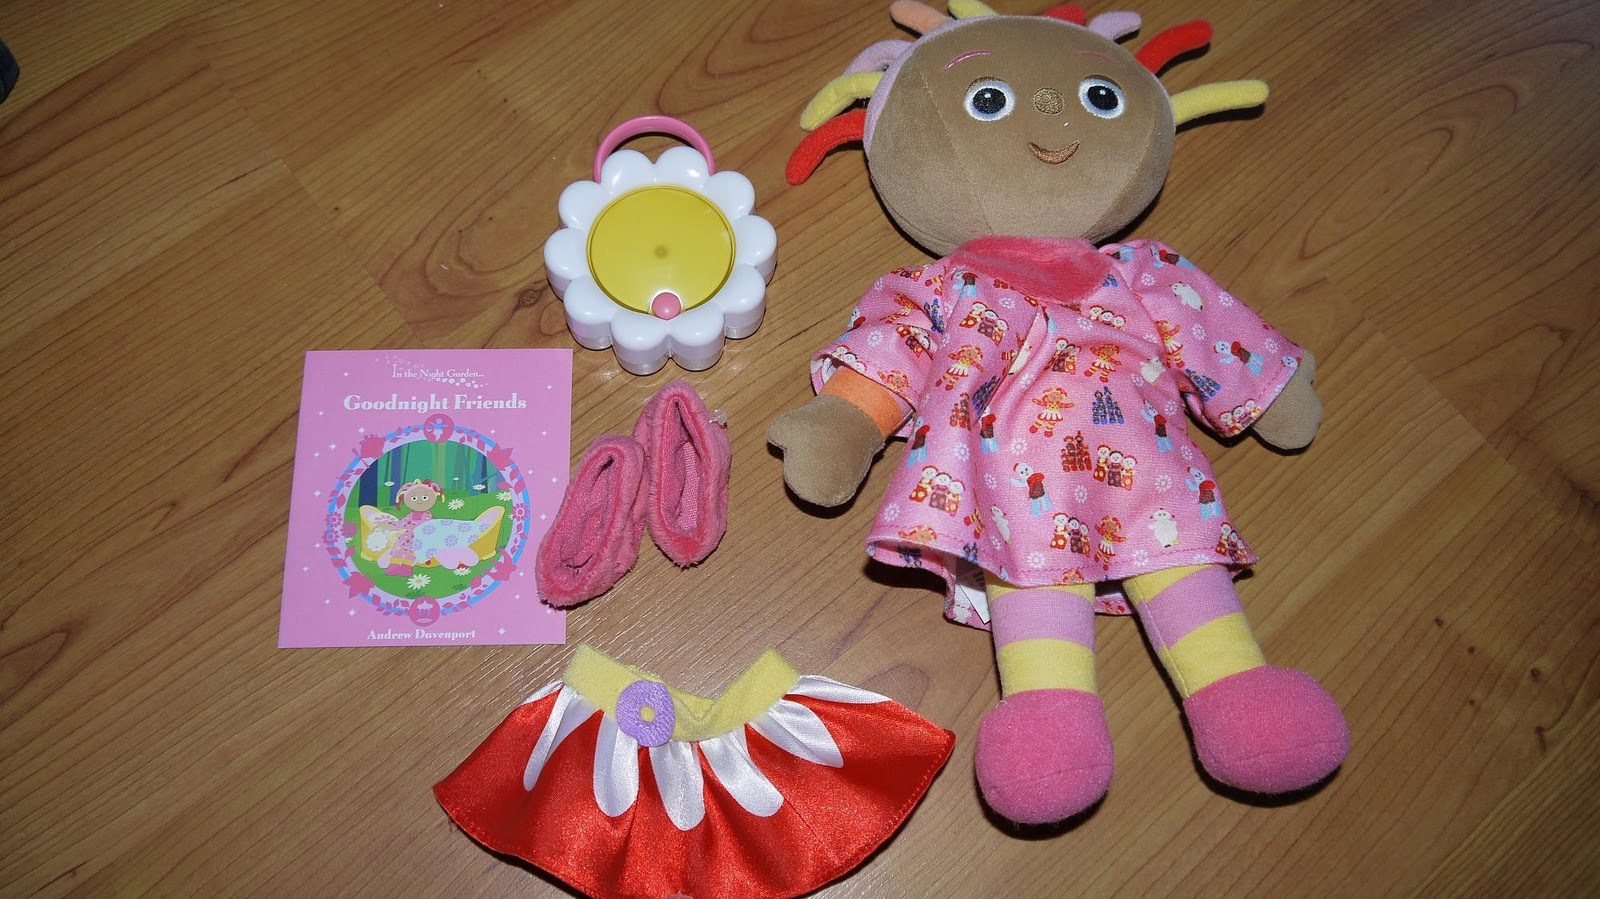 Knitting Pattern For Upsy Daisy : Inside the Wendy House: Goodnight Friends Upsy Daisy Review